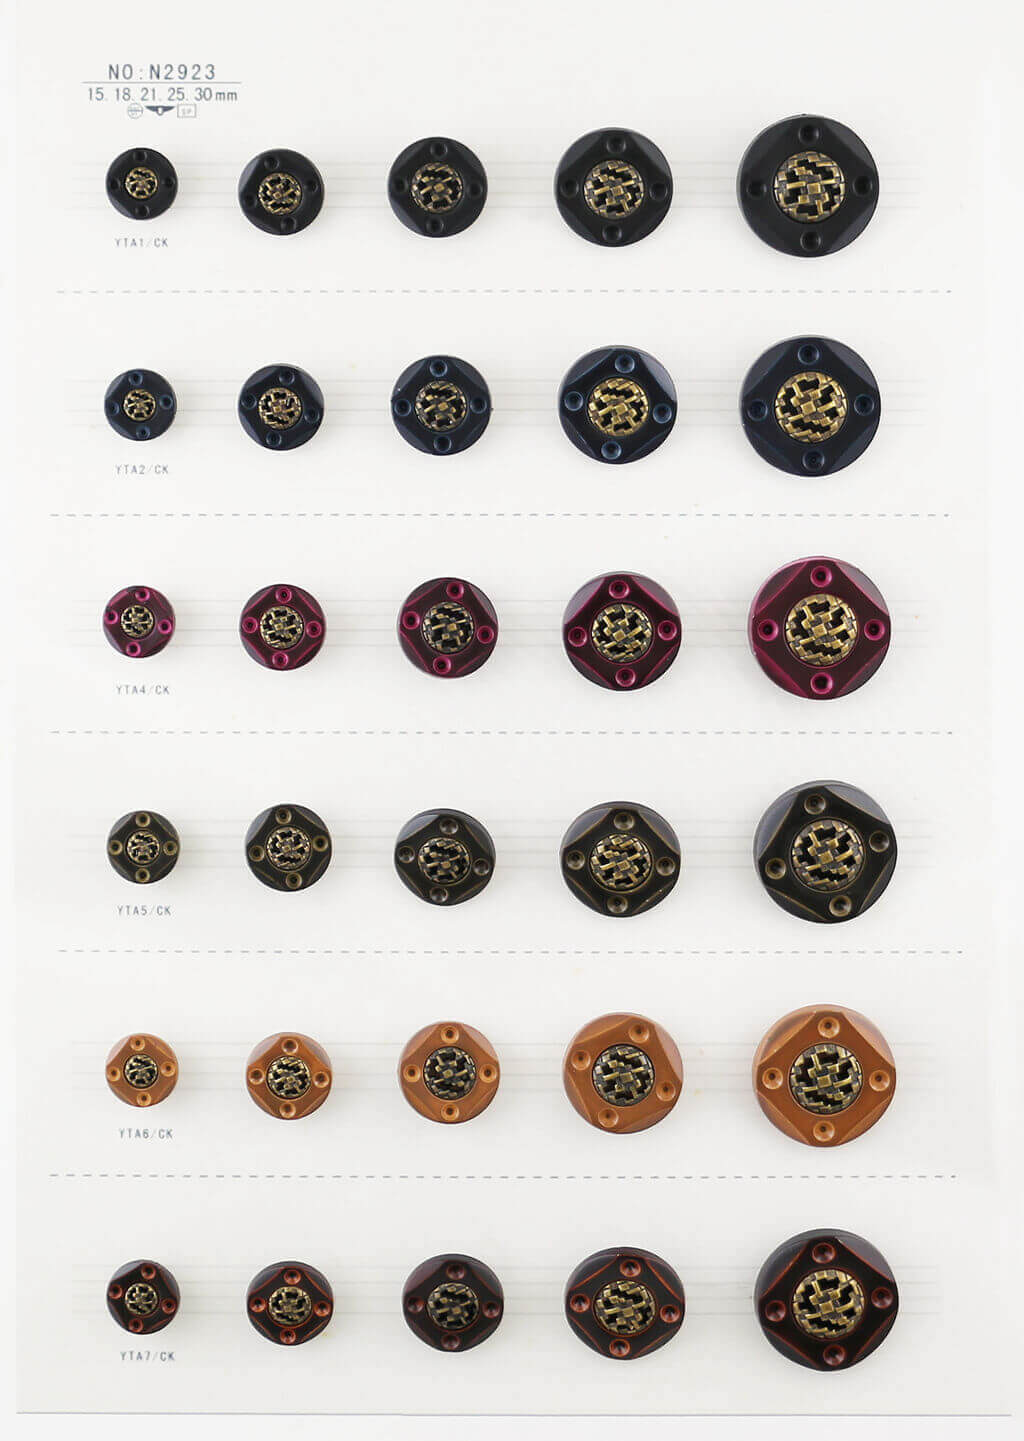 imitation leather buttons catalogue